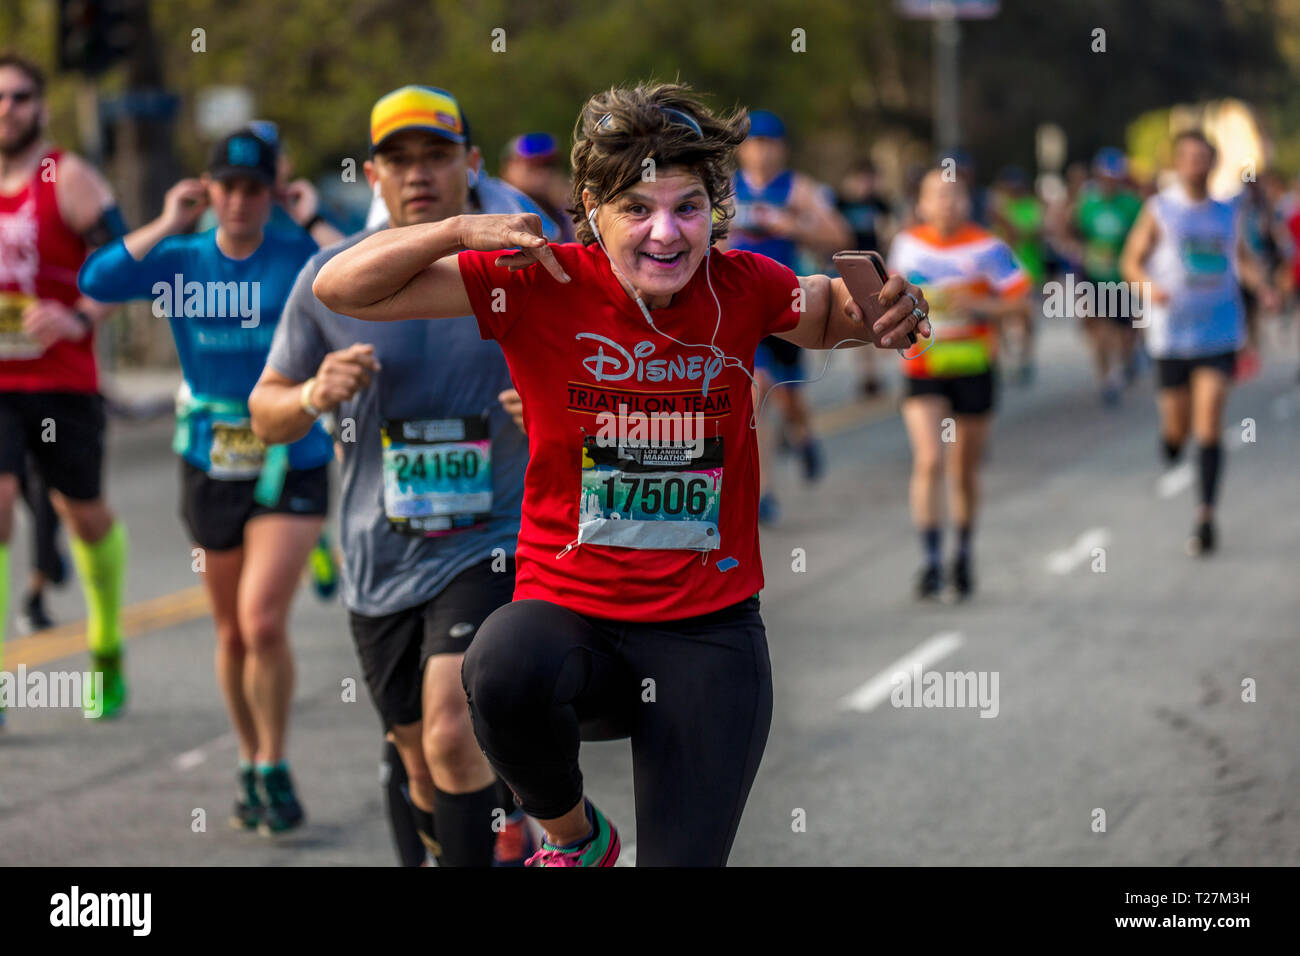 MARCH 24, 2019, LOS ANGELES, CALIFORNIA, USA -  34th Los Angeles Marathon, 'Stadium to the Sea' - the 4th largest in USA and 10th in world - runner waves acknowledges camera - Stock Image